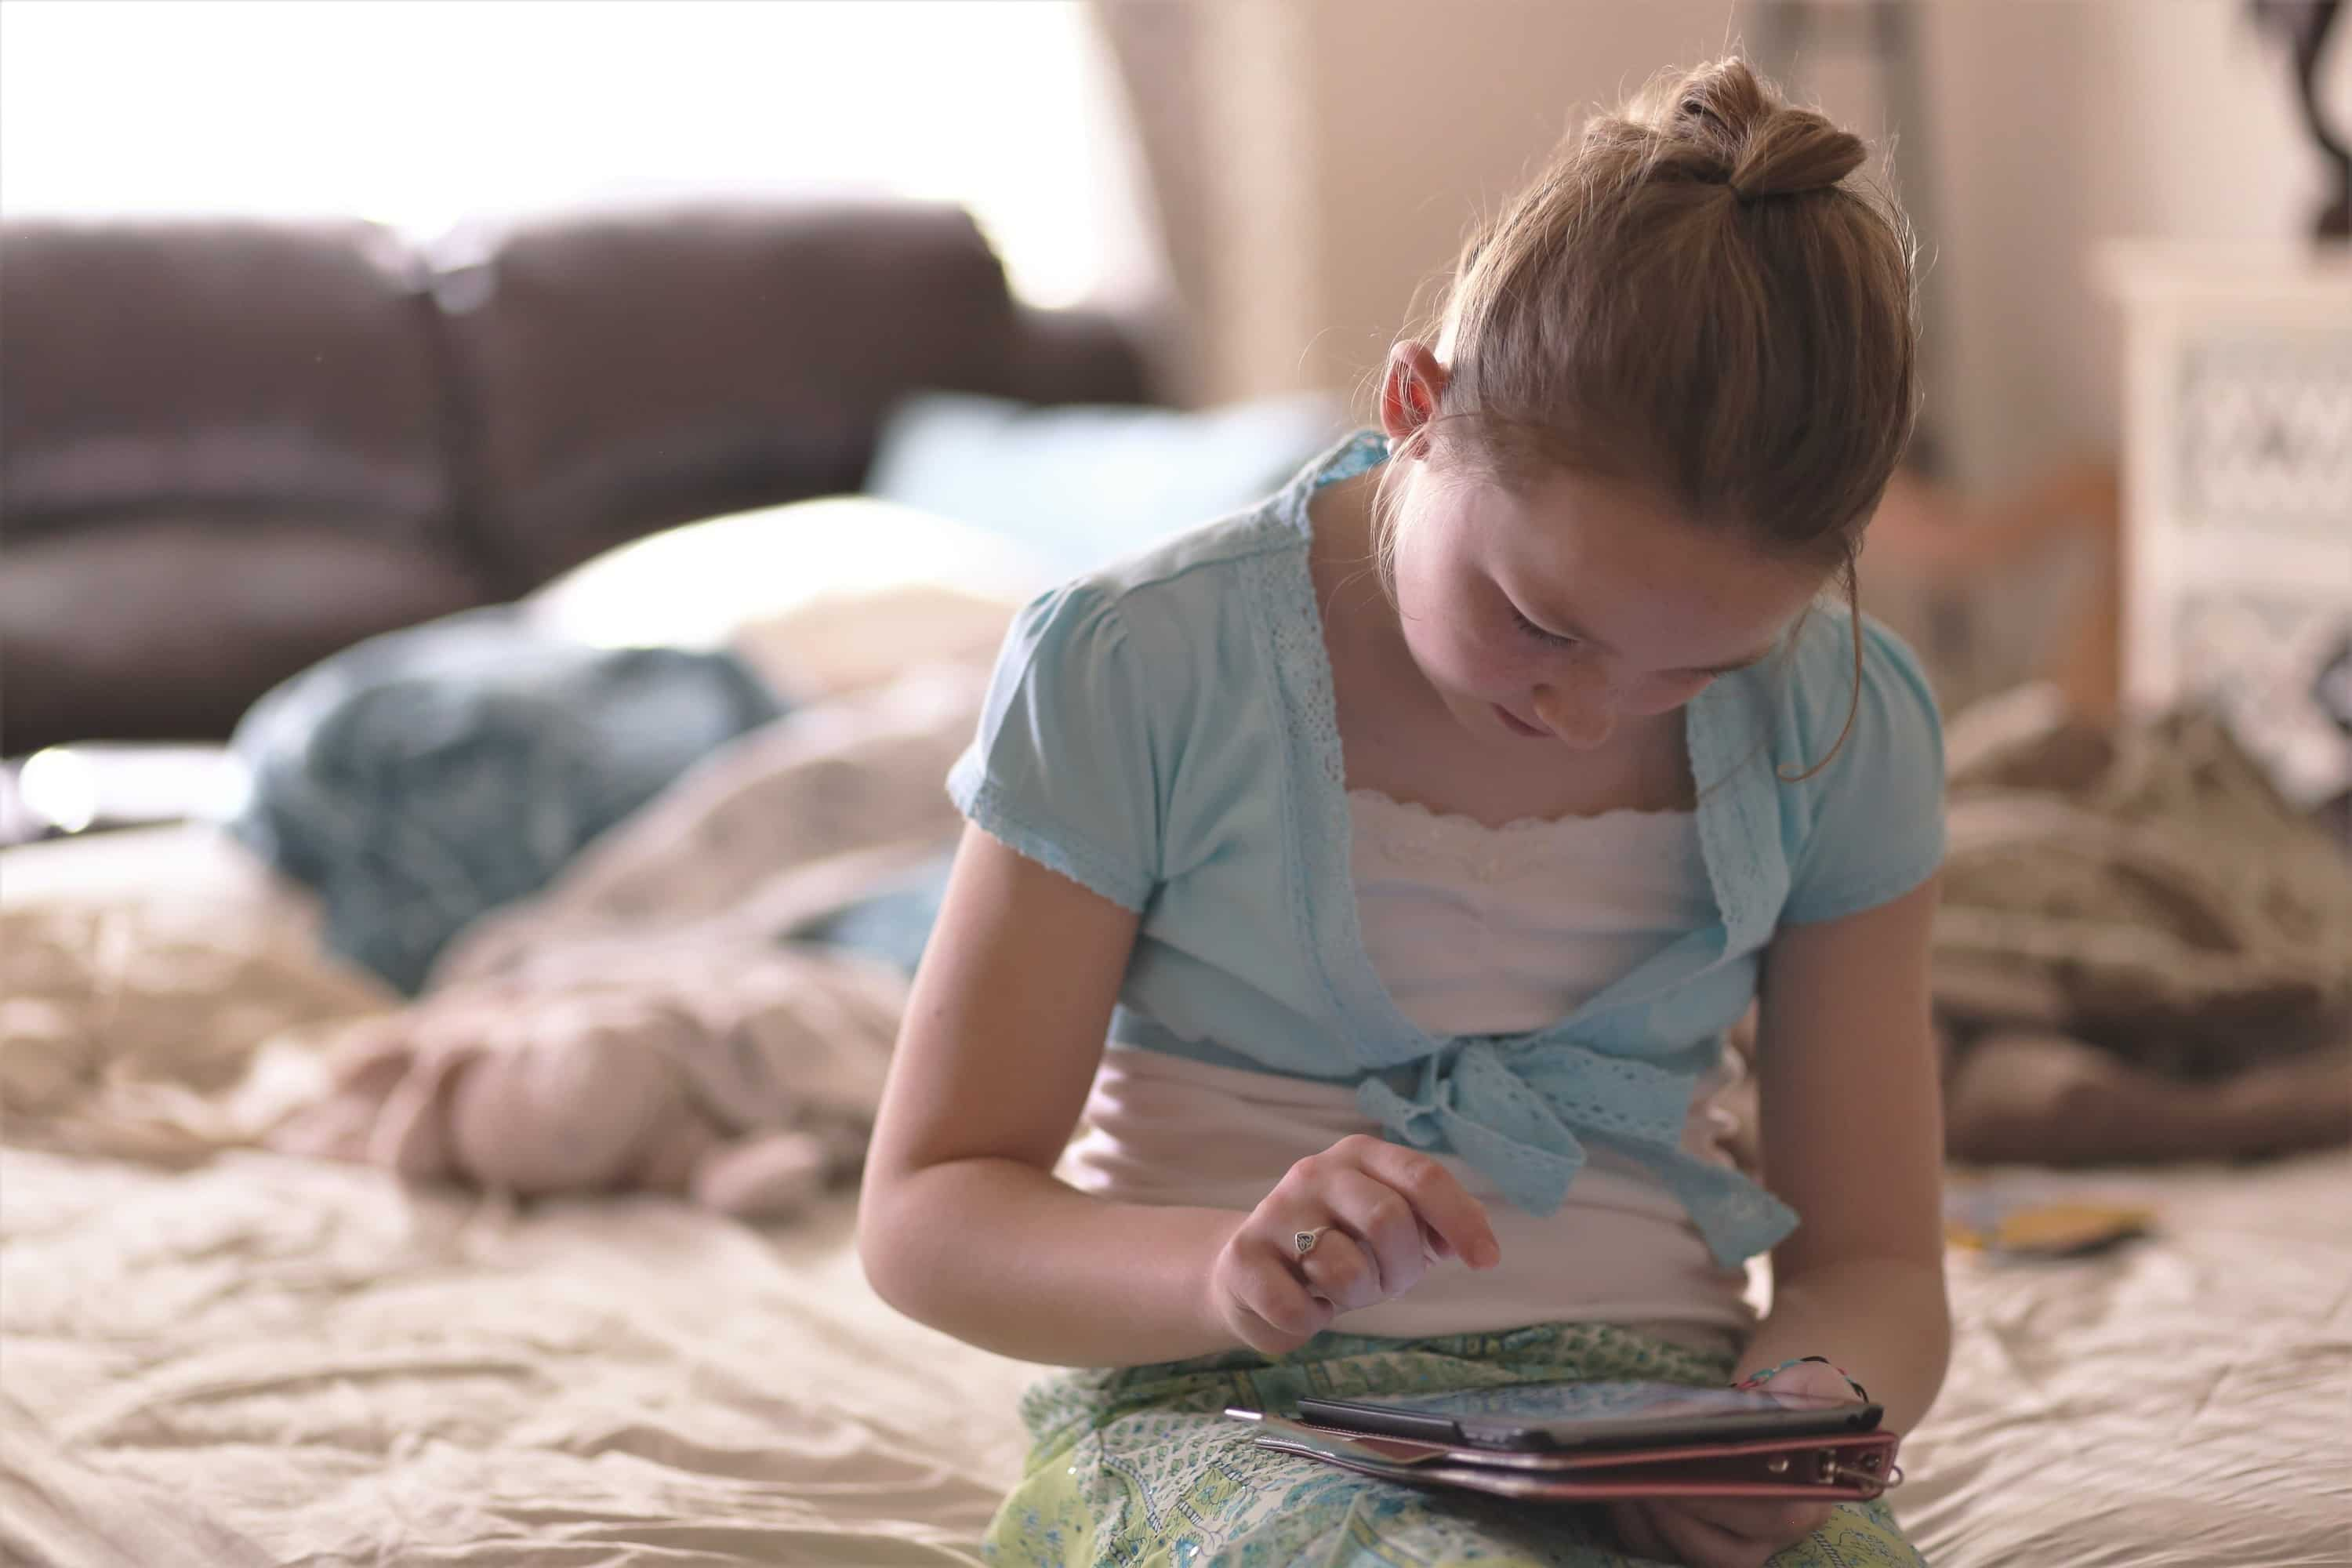 It can be maddening when kids don't listen. These are research-based strategies that will teach you how to get kids to listen calmly and effectively. Girl on iPad. Positive Discipline.